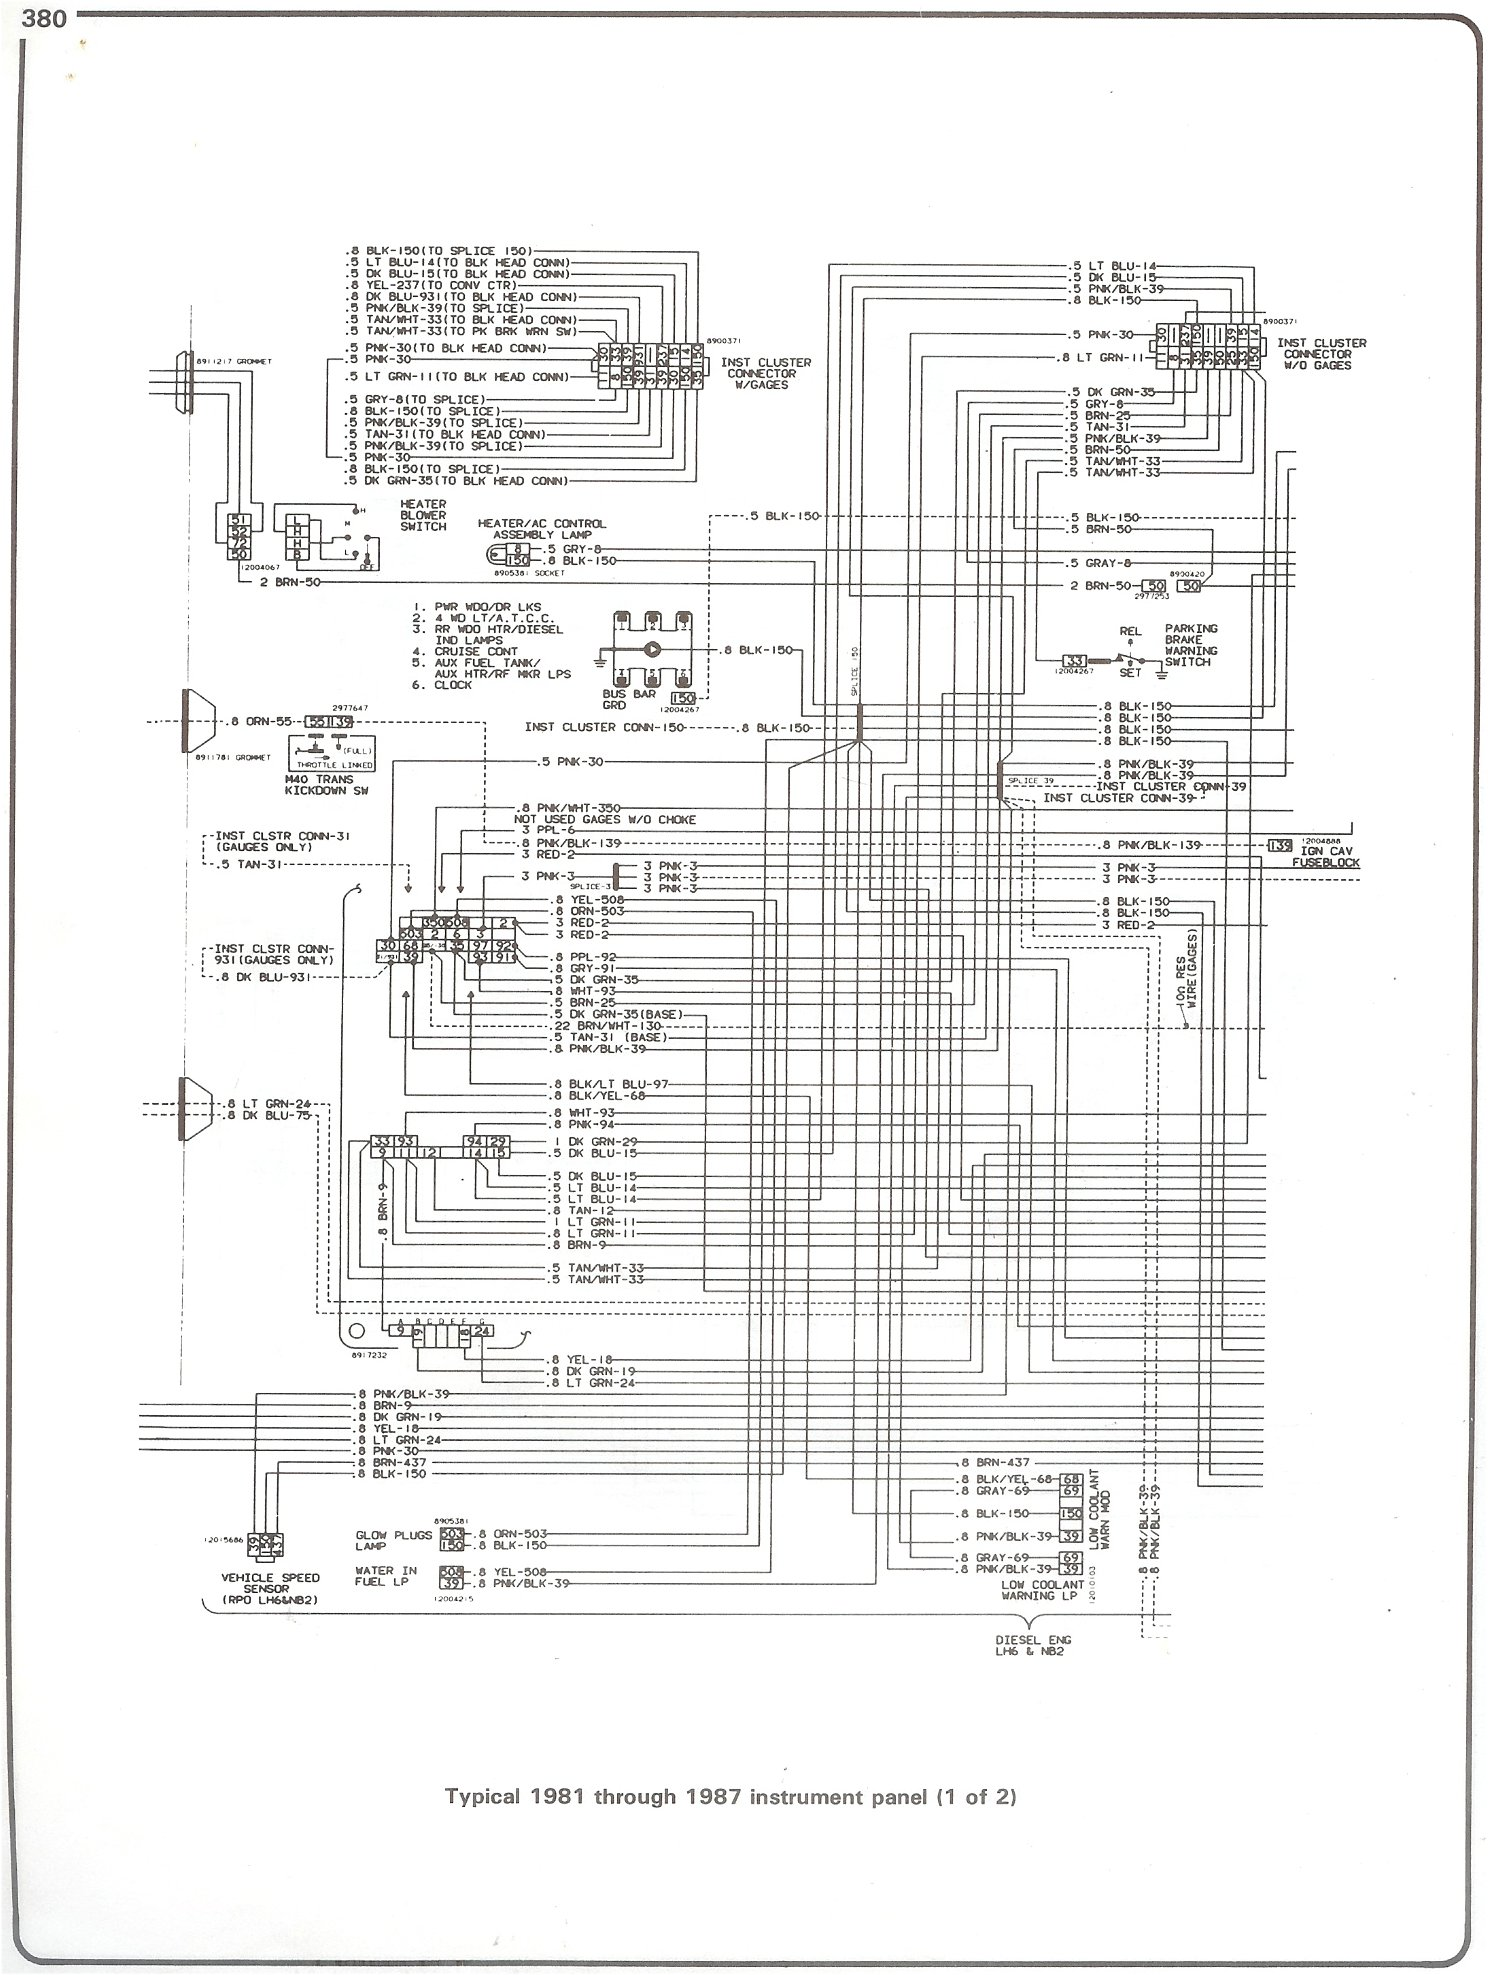 91 Chevy Silverado Wiring Diagram | Wiring Diagram on